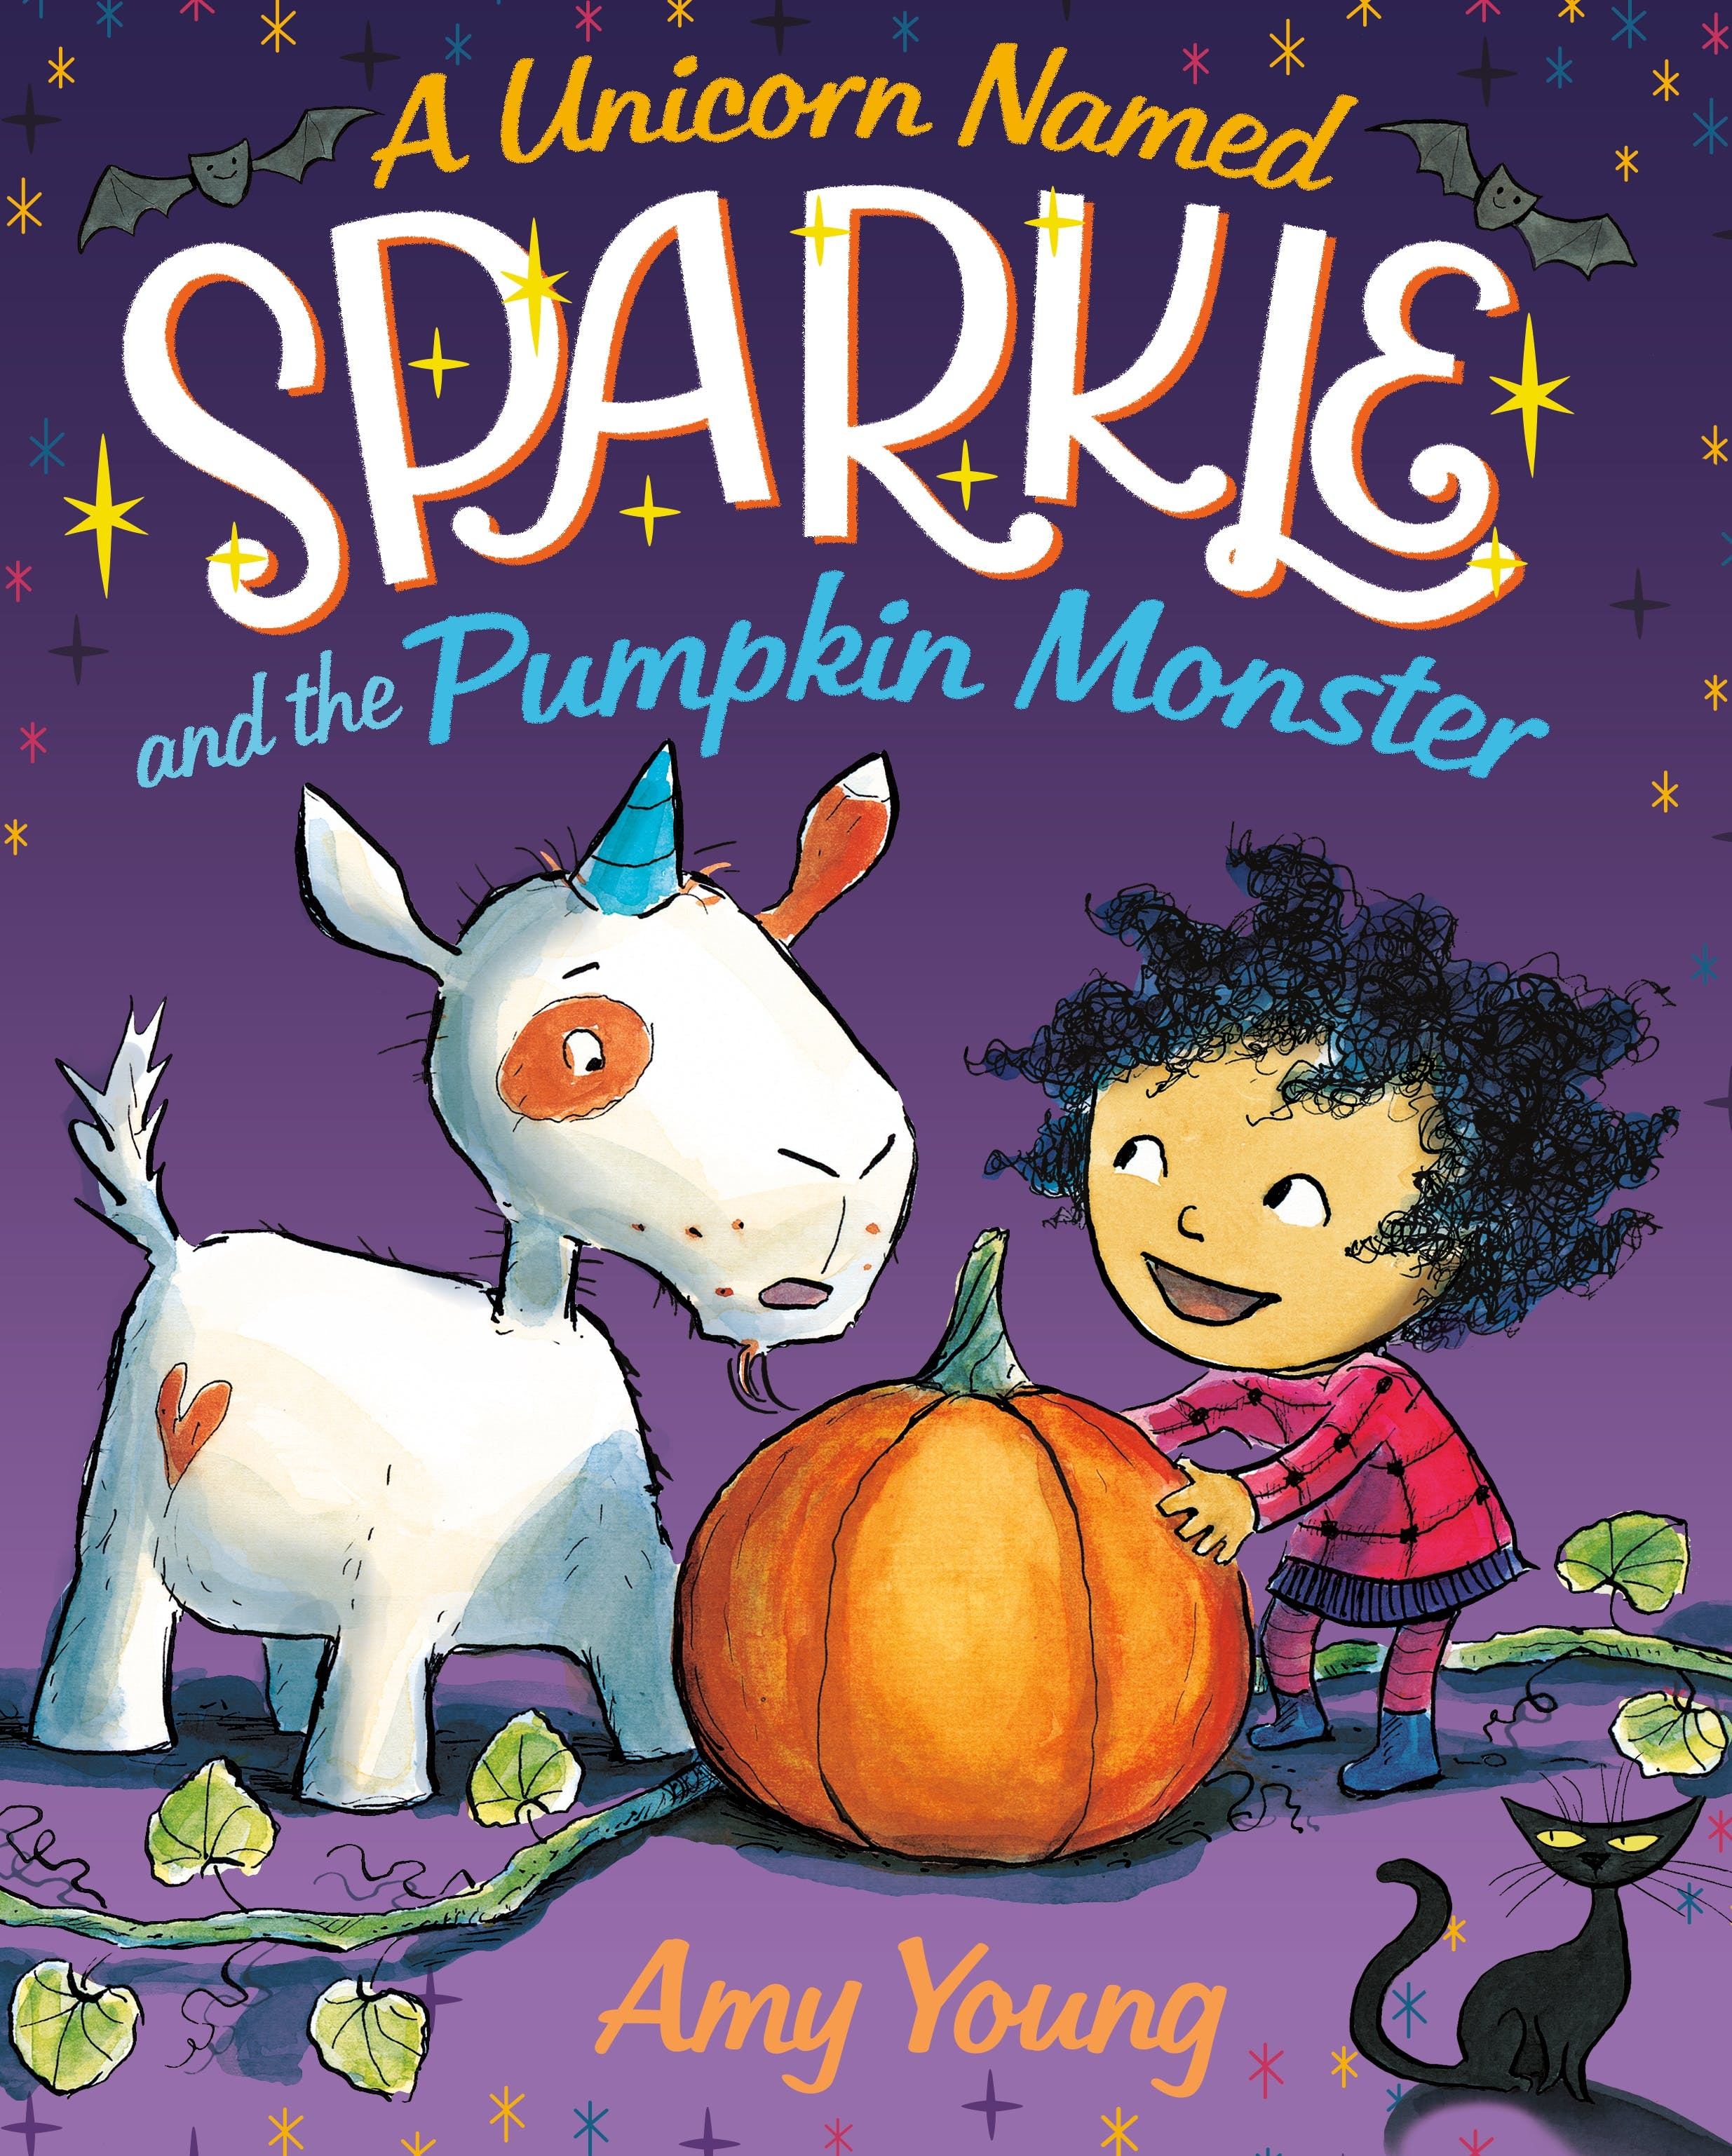 Image of A Unicorn Named Sparkle and the Pumpkin Monster